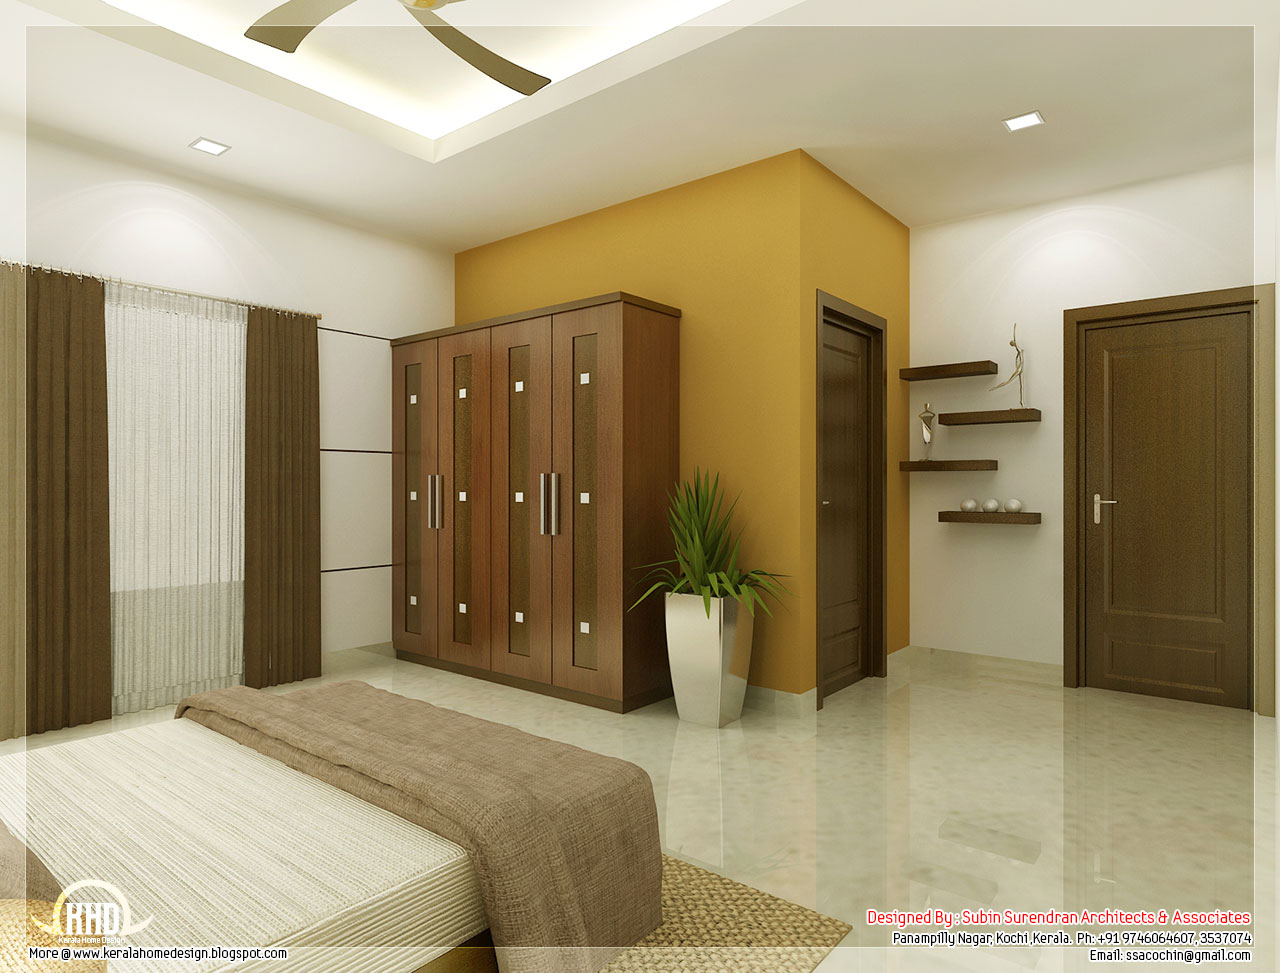 Beautiful bedroom interior designs kerala house design 2 bedroom interior design